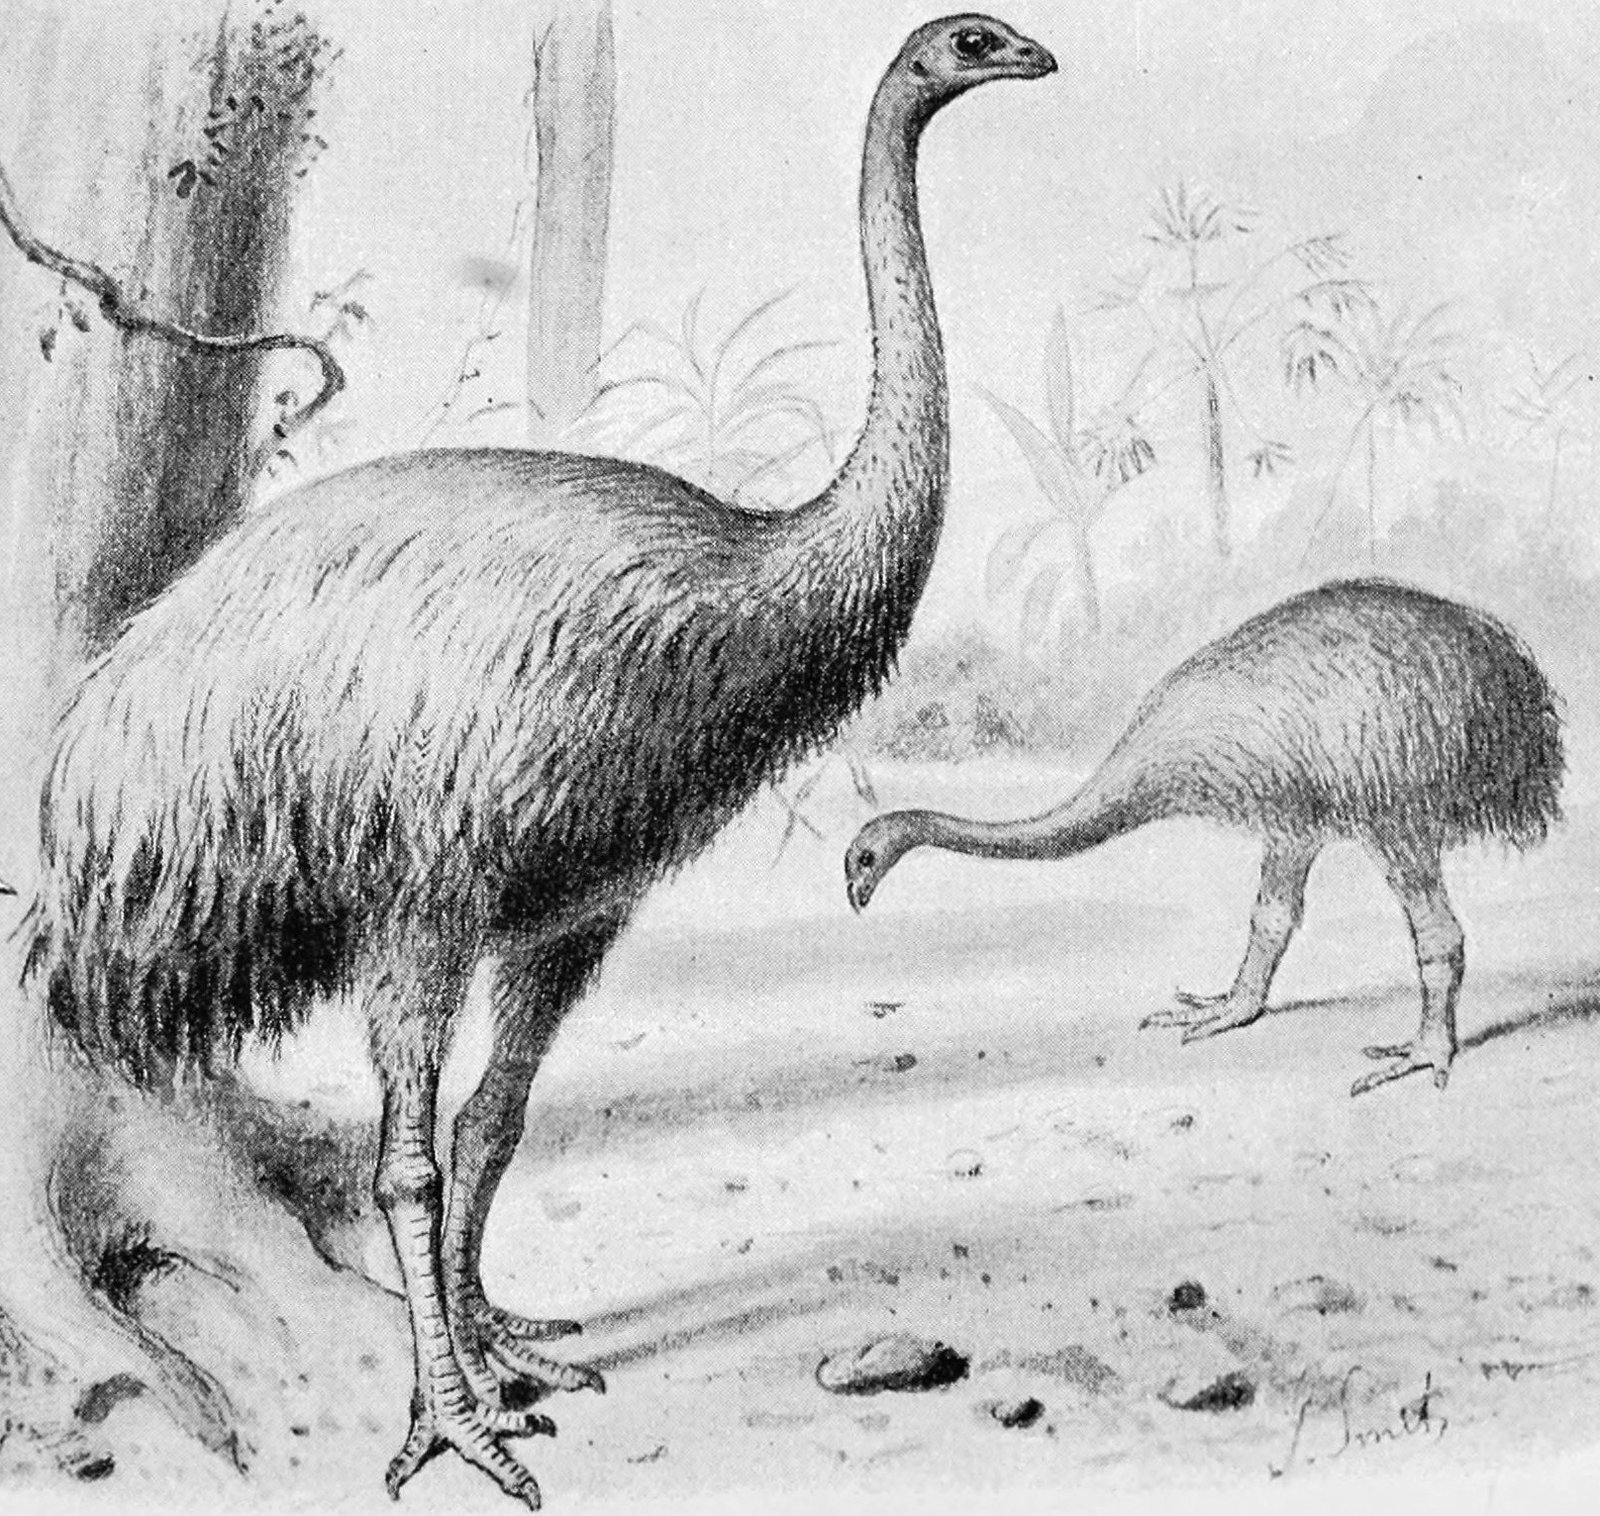 Two species of New Zealand Moa